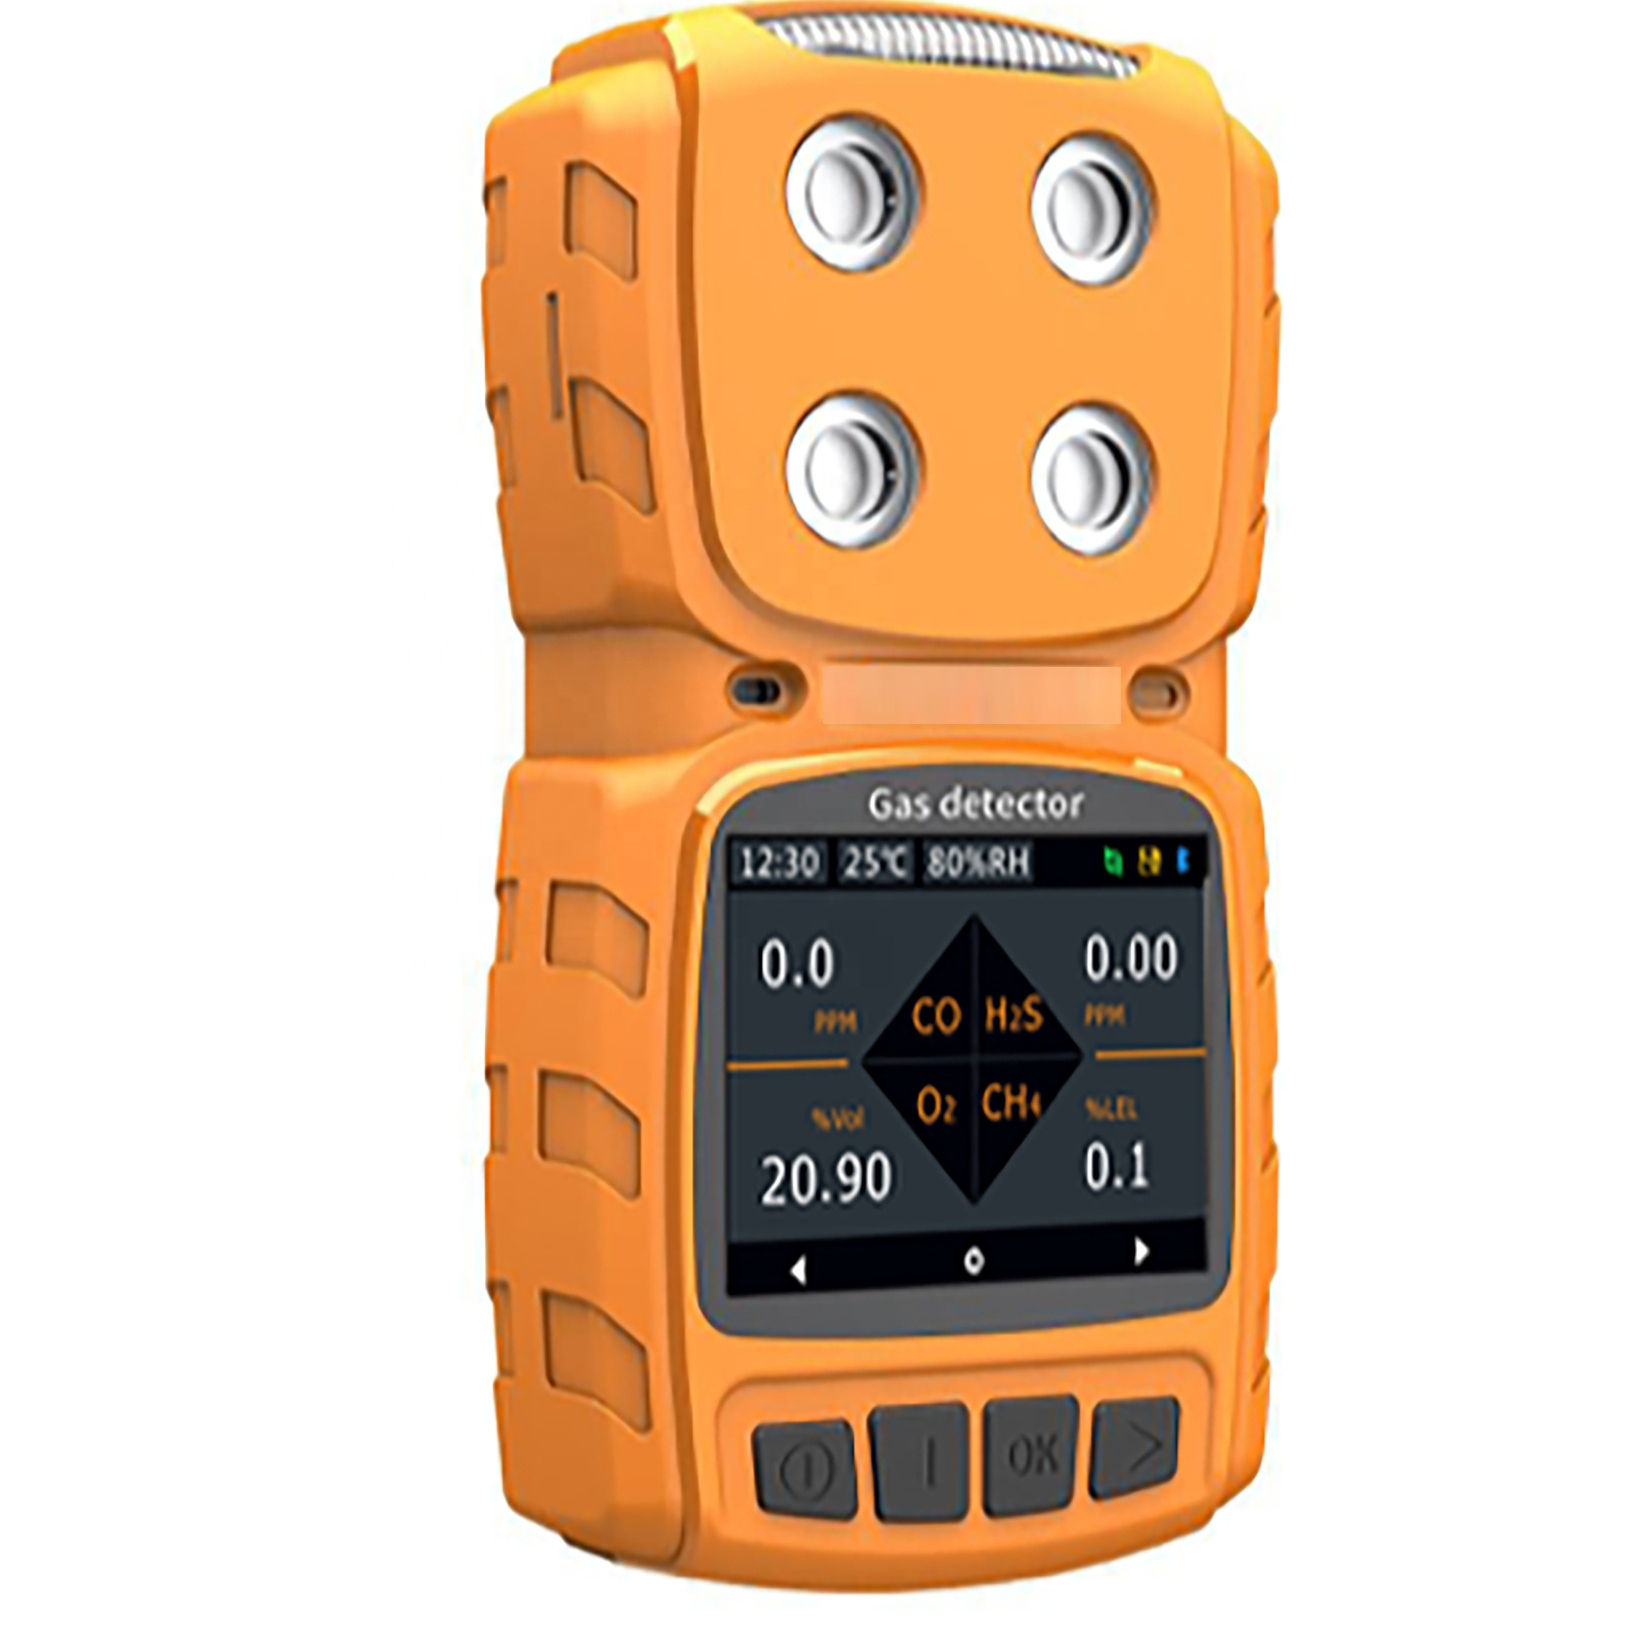 MS104K-Methane Detector Portable Four-In-One Gas Detector Similar Honeywell Alert Imported Catalytic Combustion Sensor